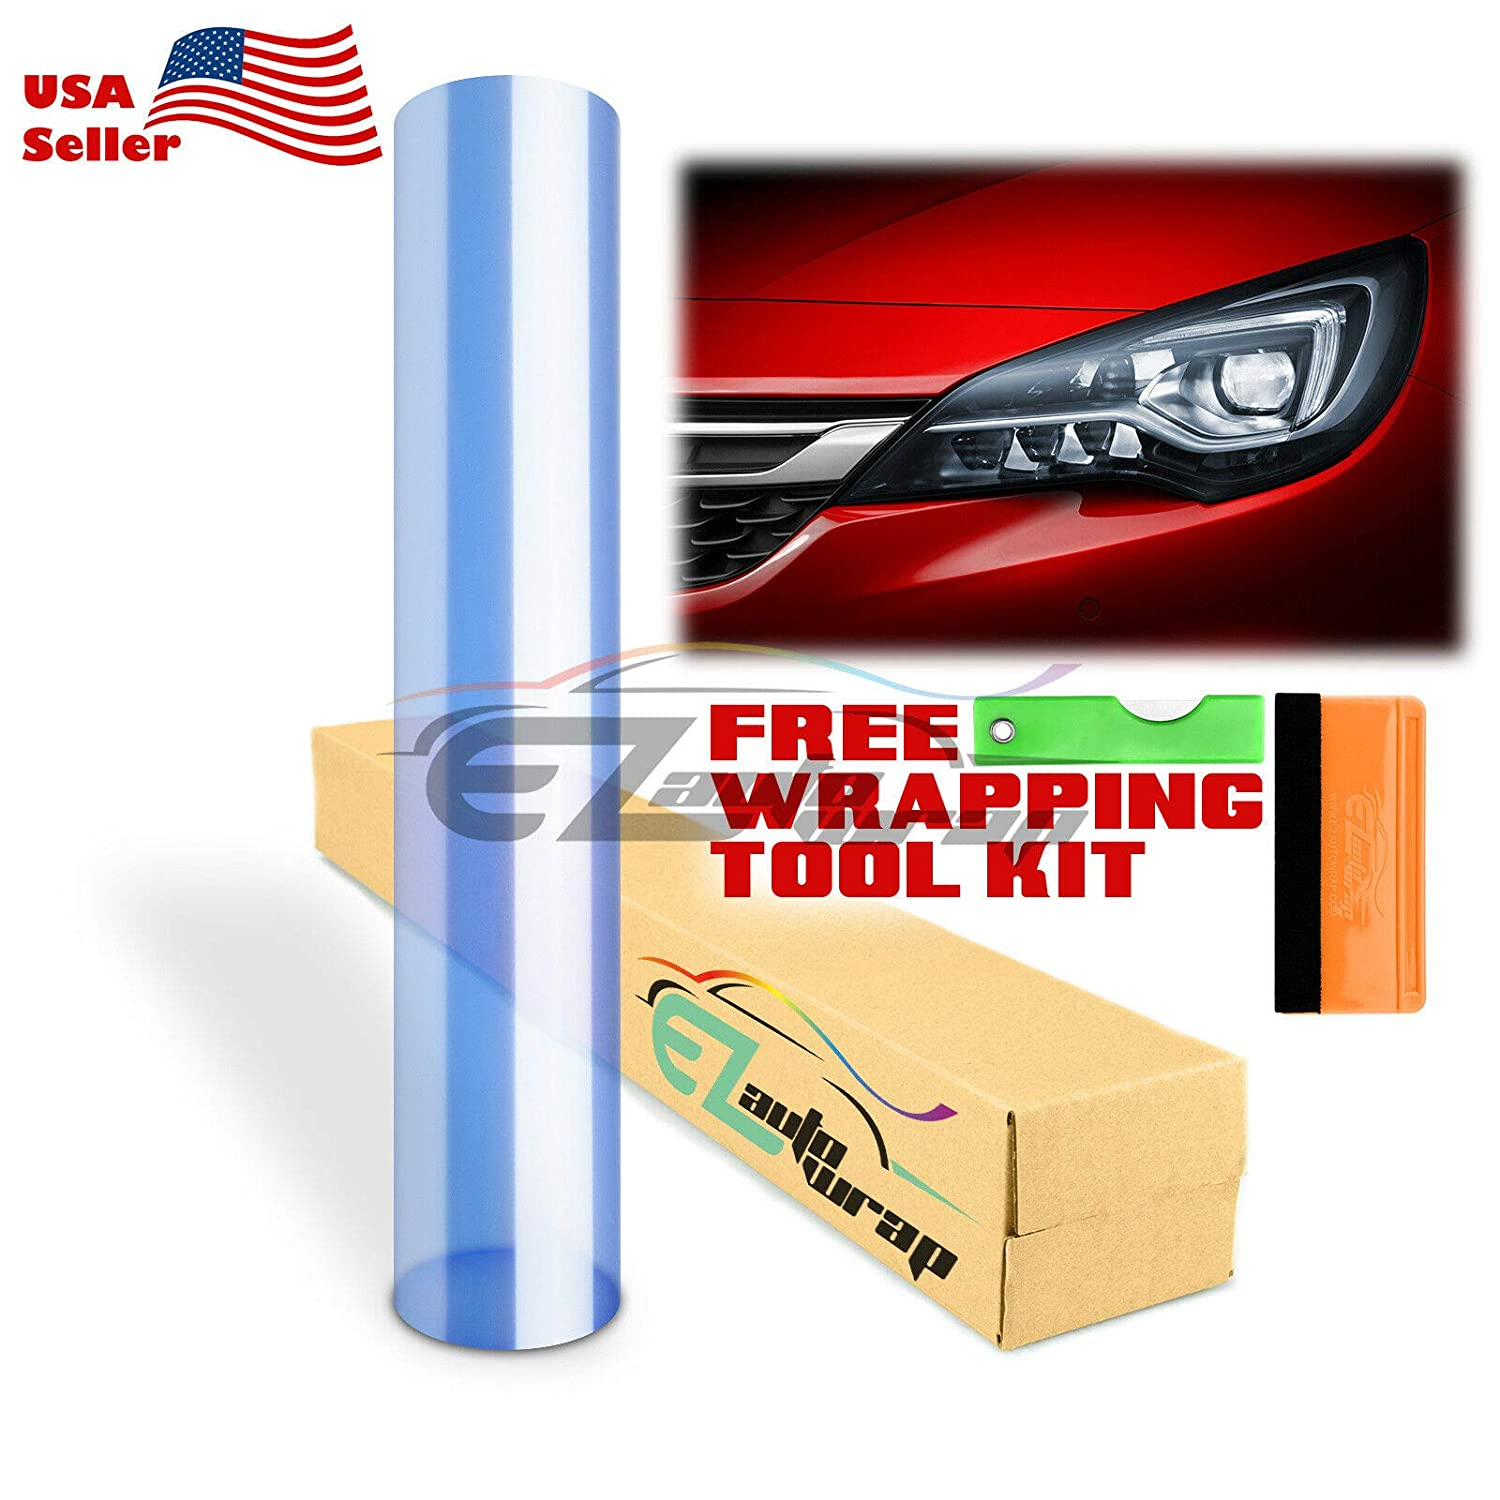 EZAUTOWRAP Free Tool Kit 12x60 Glossy Clear Transparent Headlight Taillight Fog Light Side Marker Vinyl Tint Film Self Adhesive 1FT x 5FT